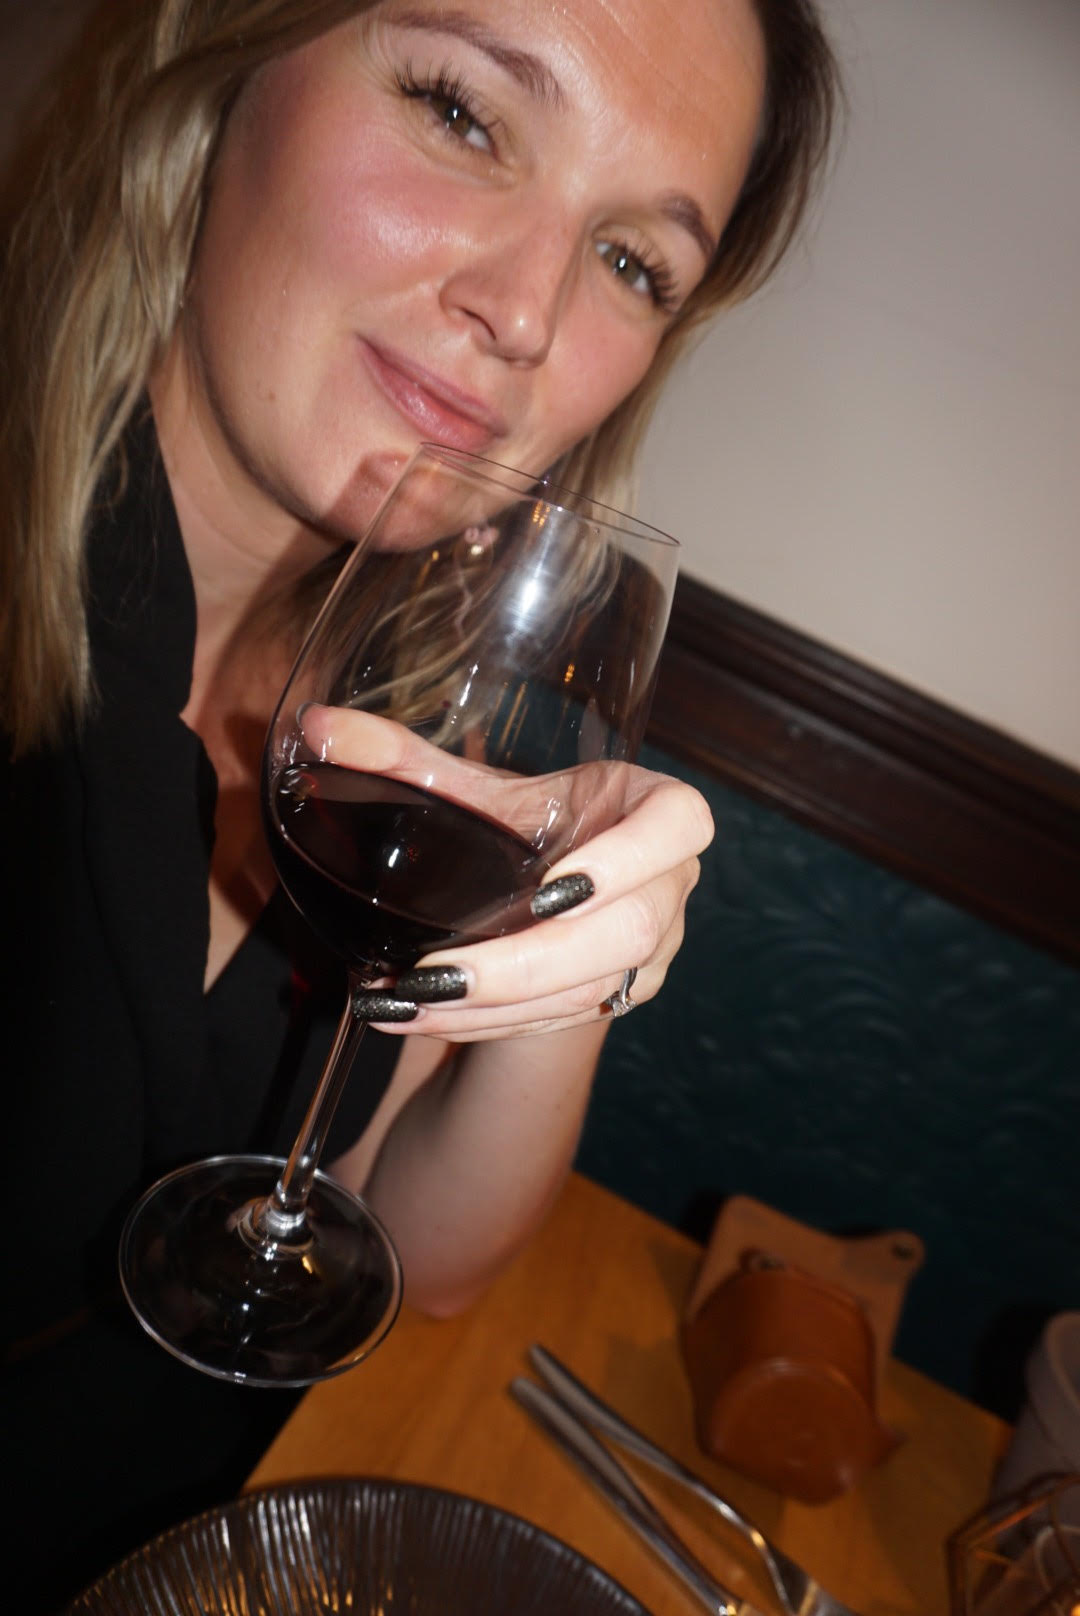 rioja - Edinburgh food and wine blogger